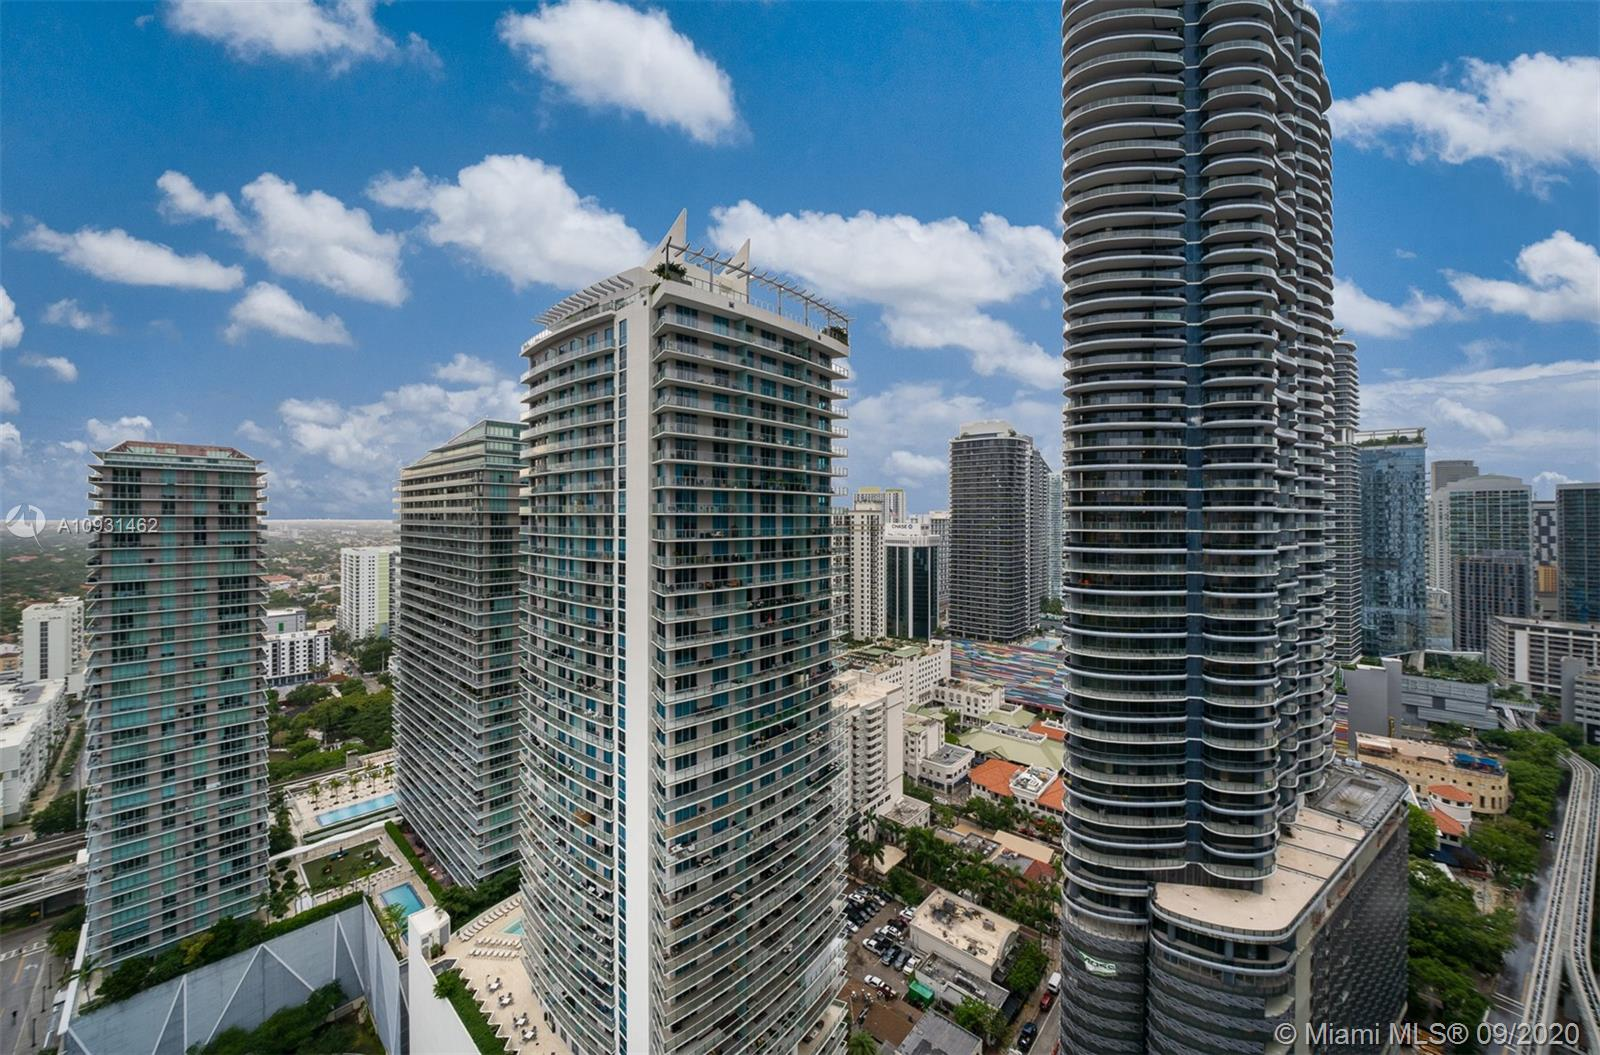 1080 Brickell Ave # 3405, Miami, Florida 33131, ,1 BathroomBathrooms,Residential Lease,For Rent,1080 Brickell Ave # 3405,A10931462